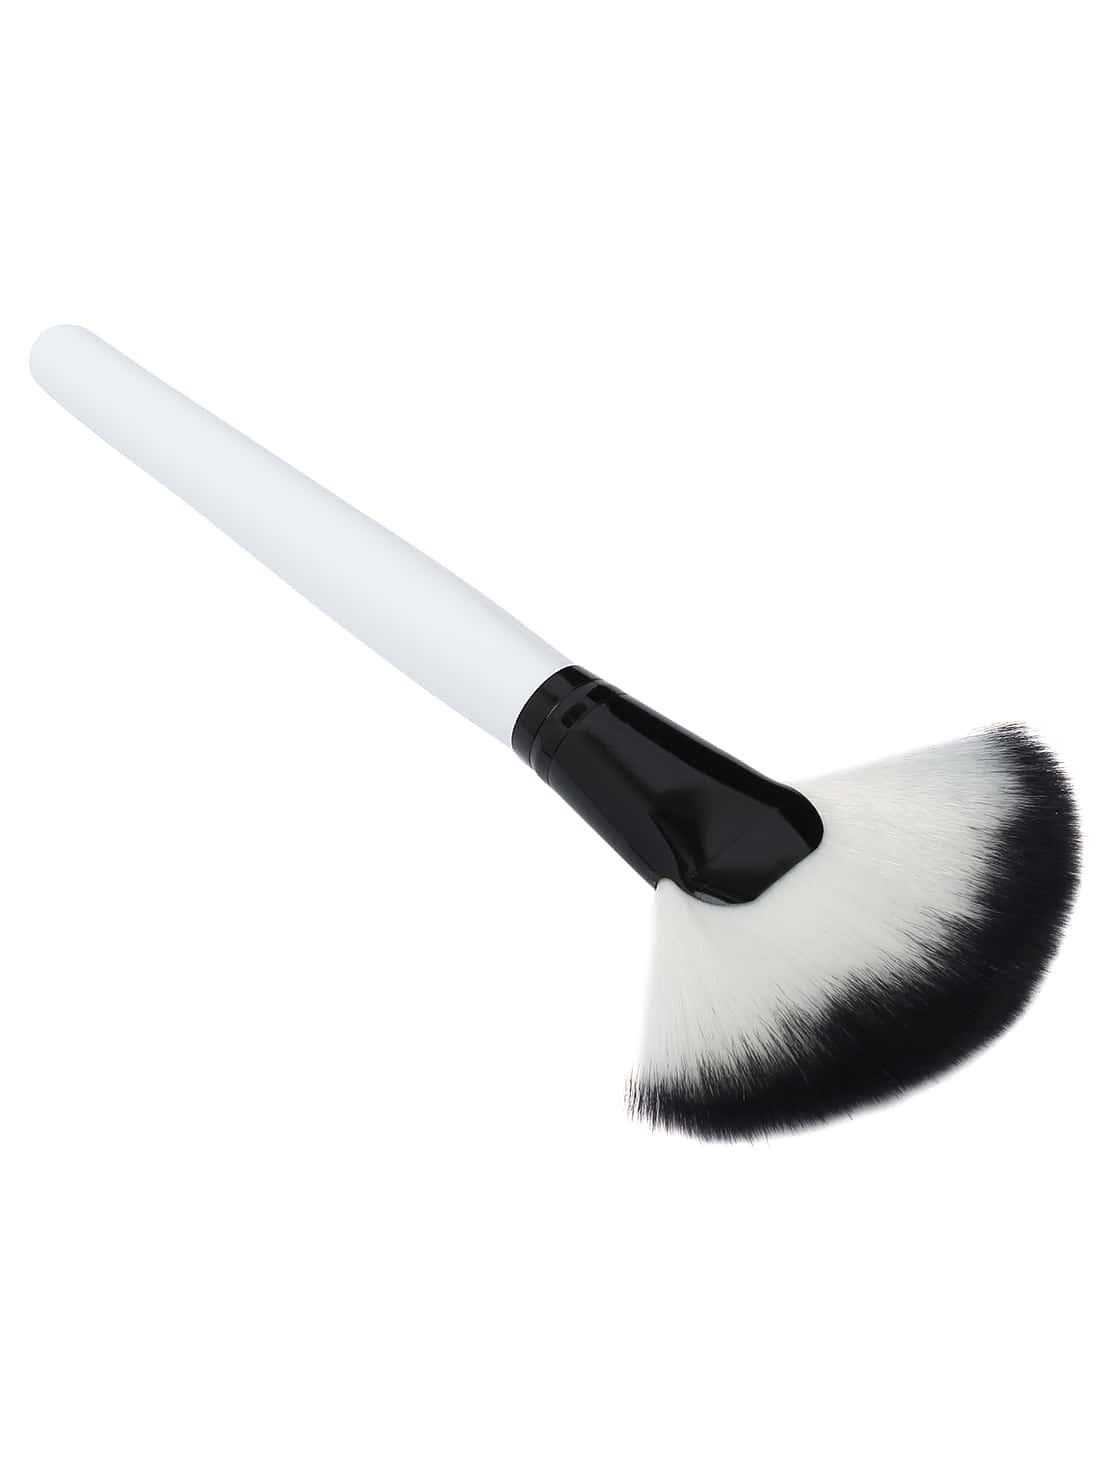 Fan Face BrushFan Face Brush<br><br>color: White<br>size: None